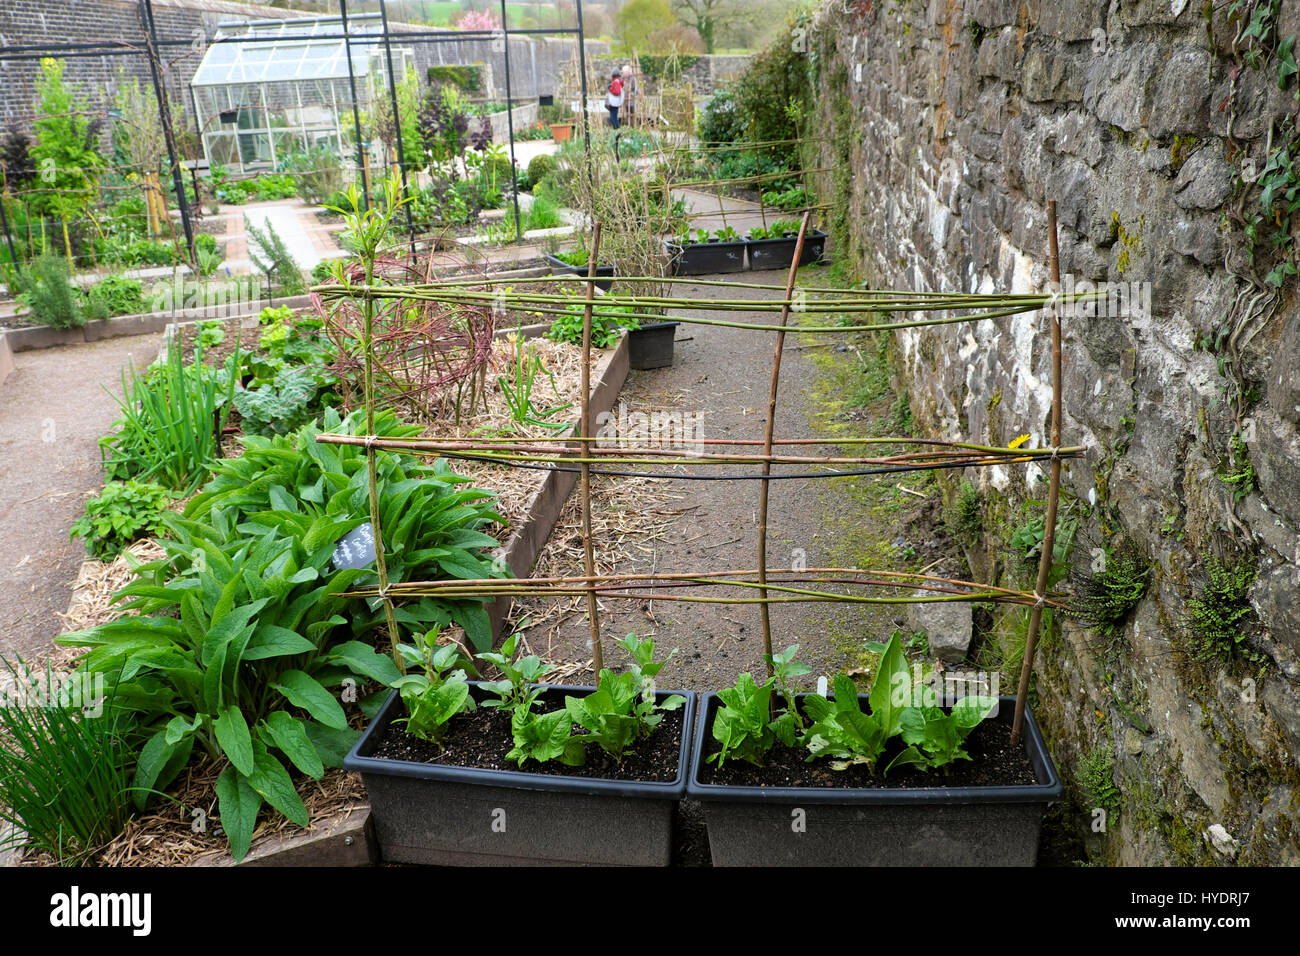 Comfrey plants in raised beds, straw mulch & willow branch structure frame support at the National Botanic Garden - Stock Image